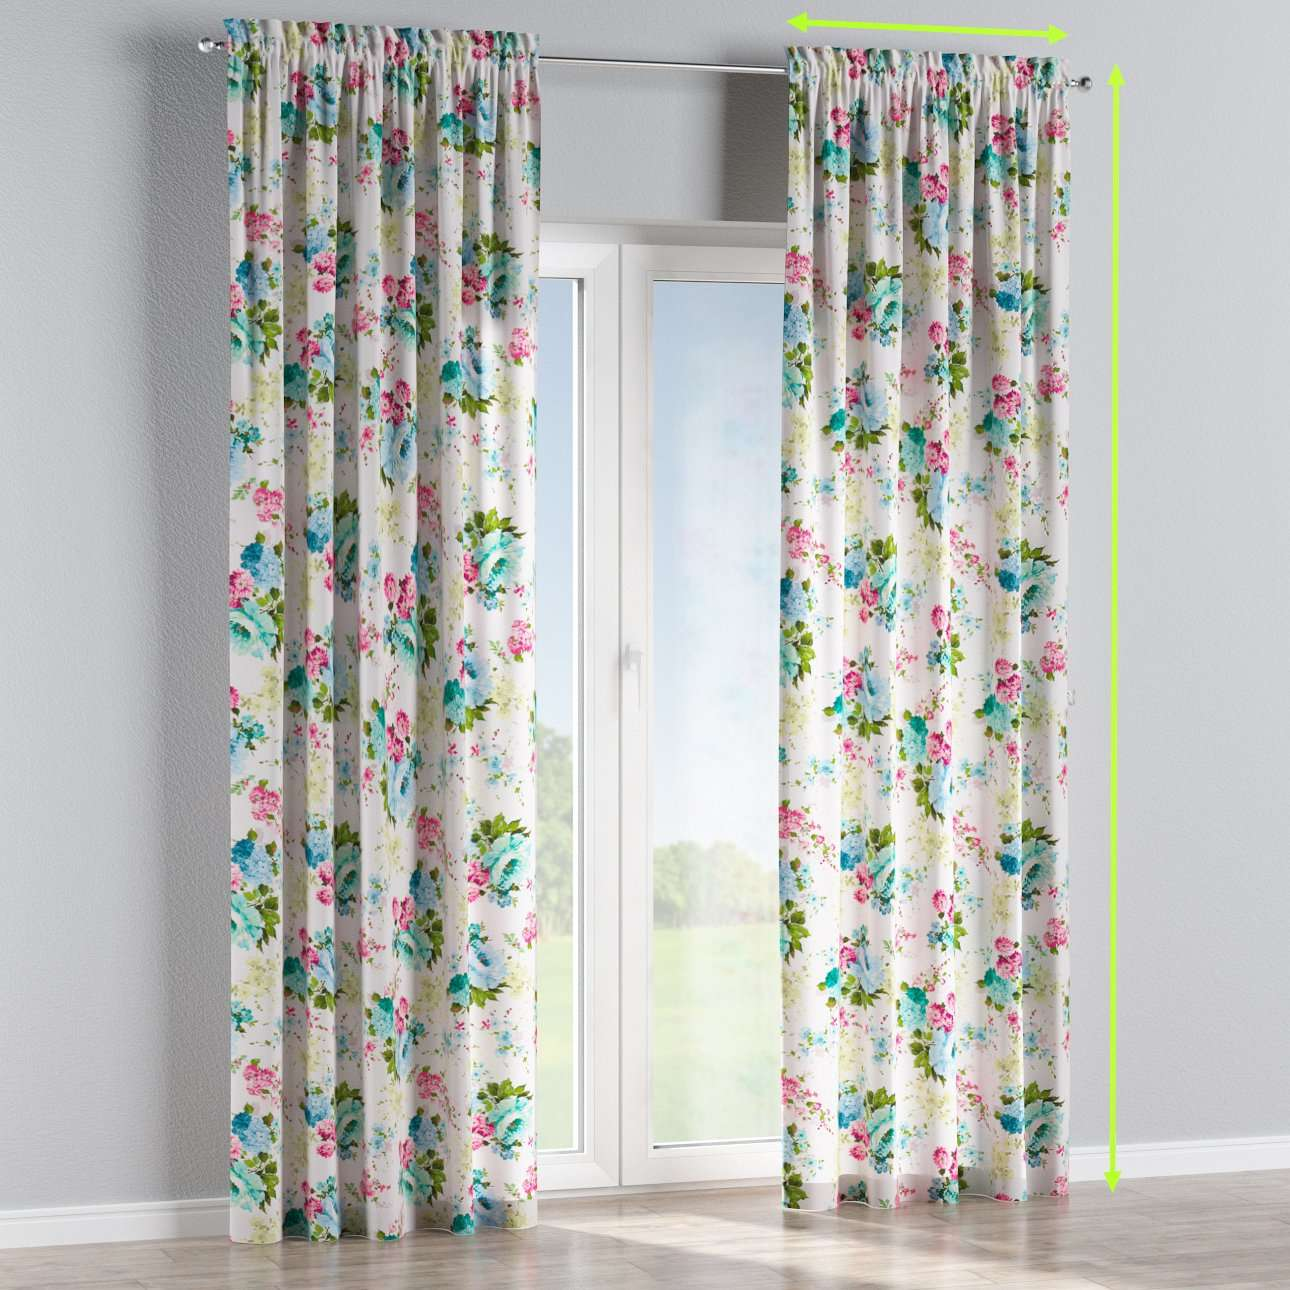 Slot and frill curtains in collection Monet, fabric: 140-02